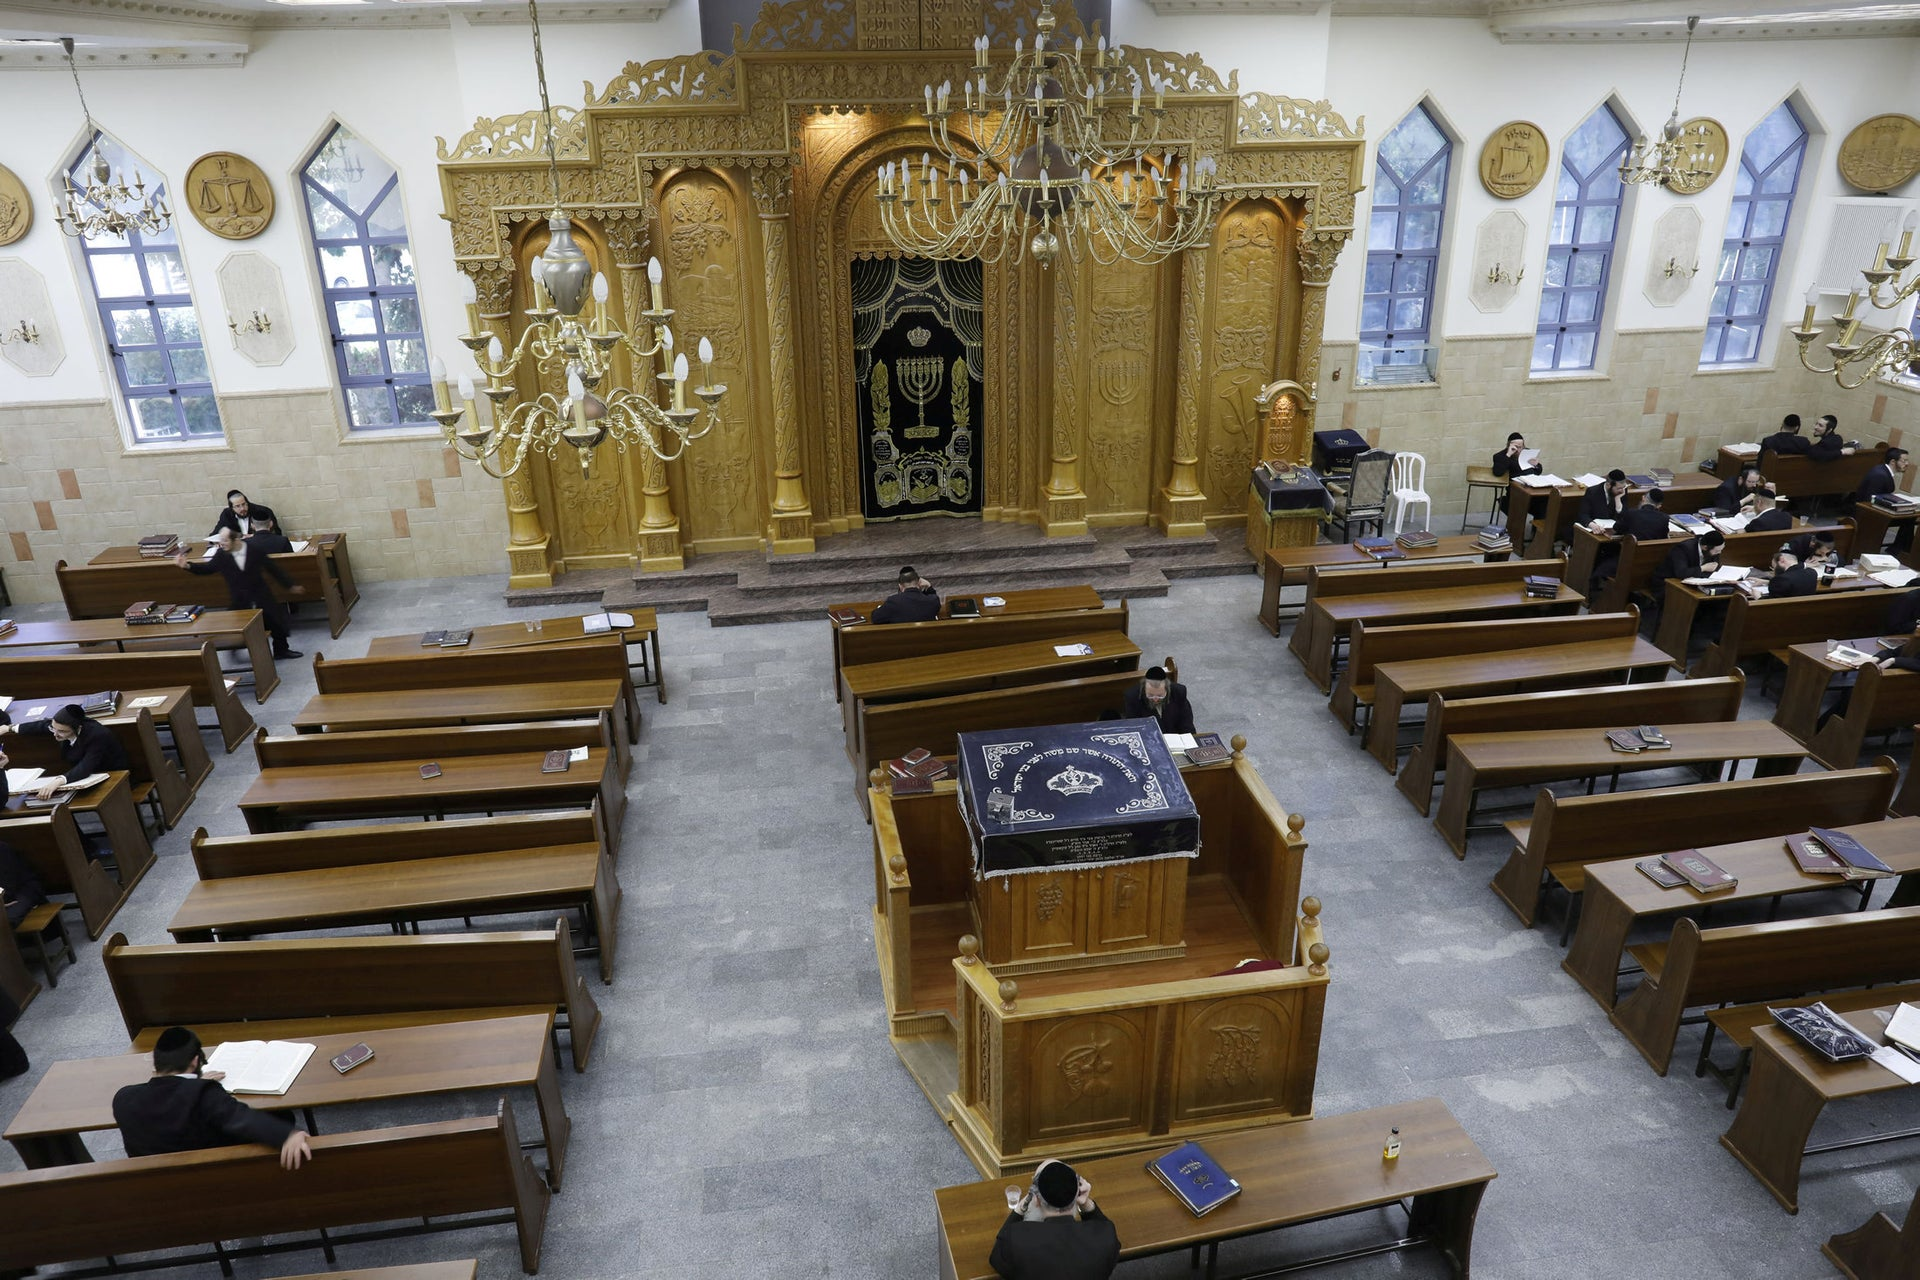 Ultra Orthodox Jewish men study inside a synagogue in the Israeli settlement of Beitar Illit